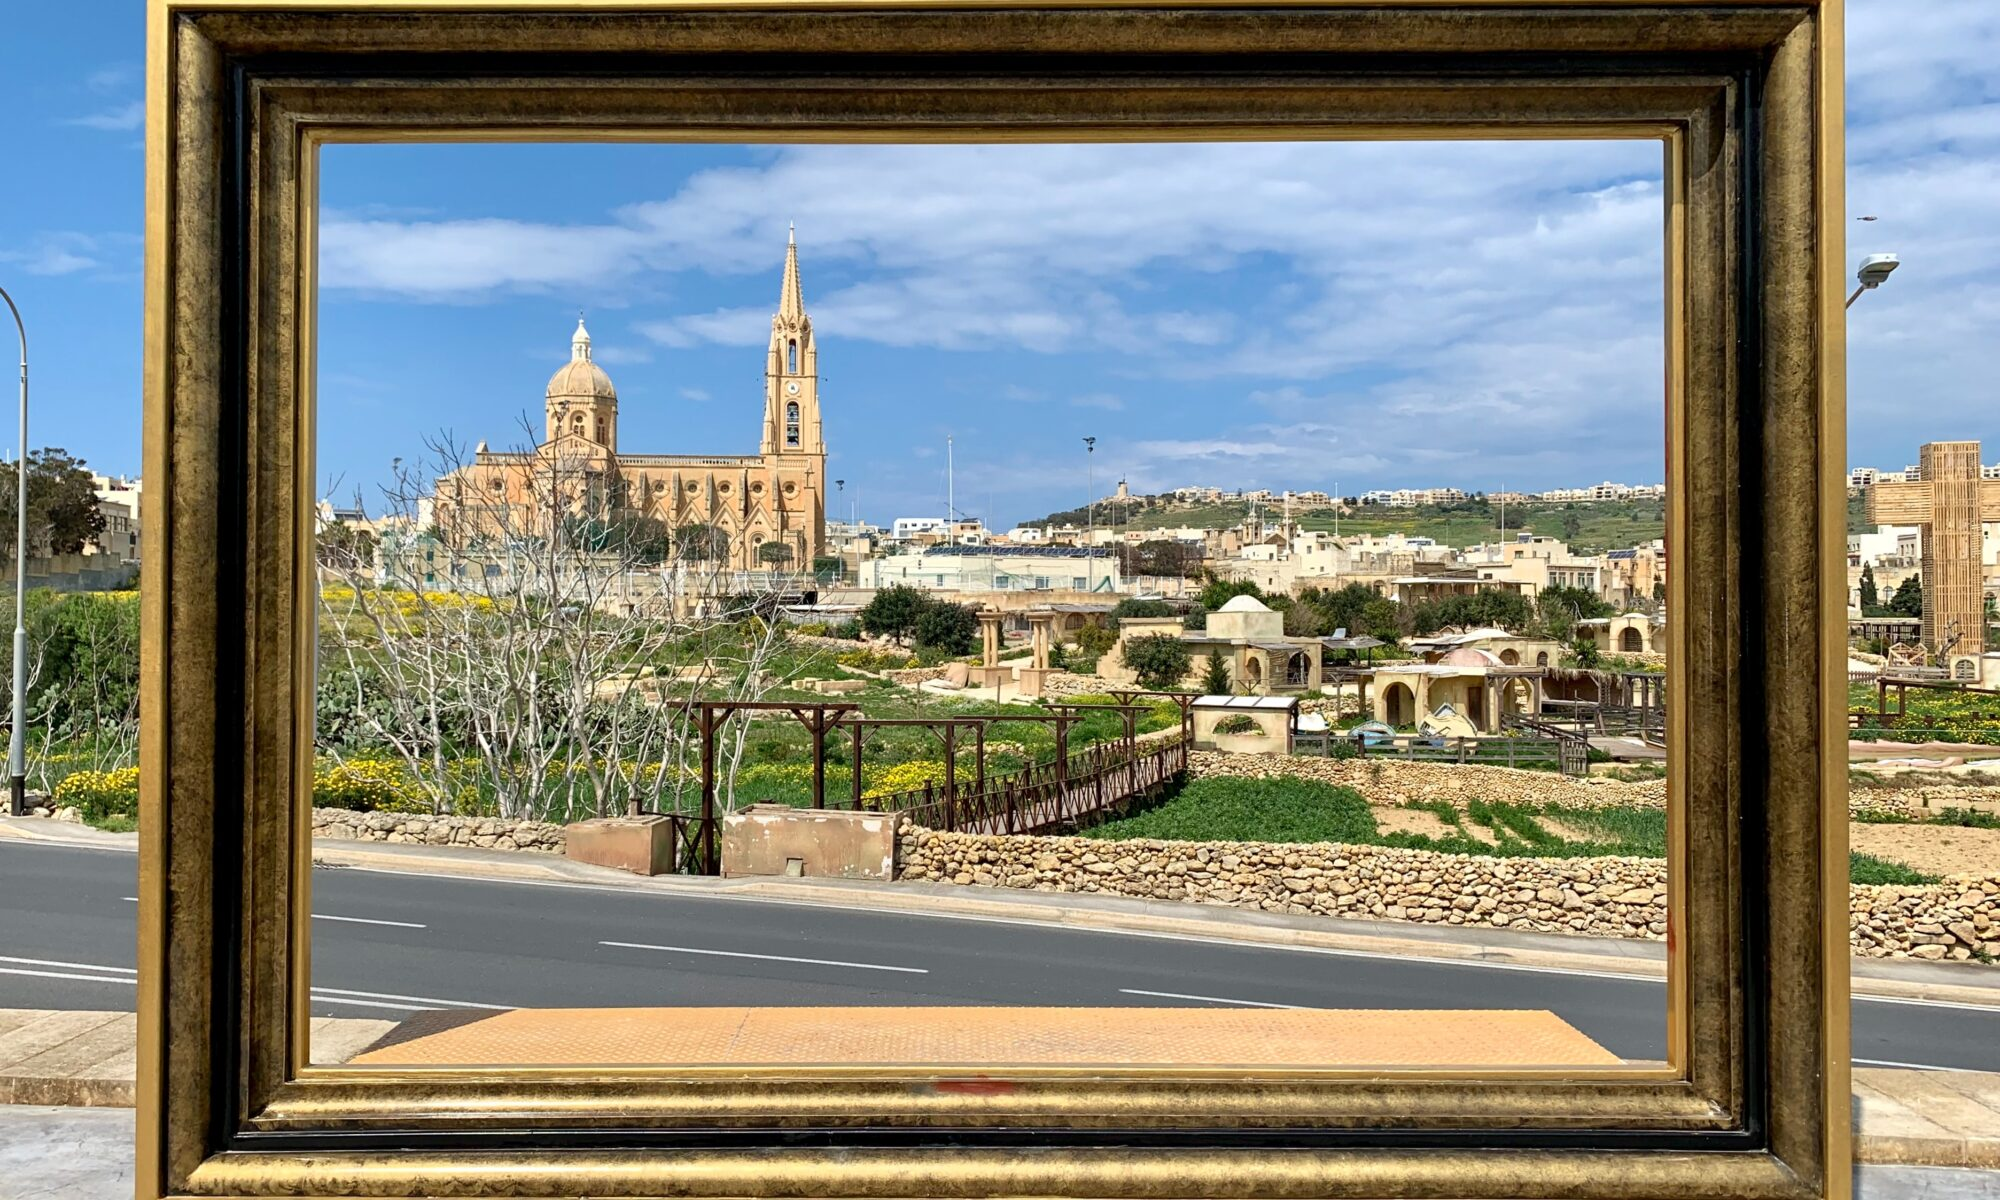 Living in Gozo: Cost, Quality, Pros & Cons